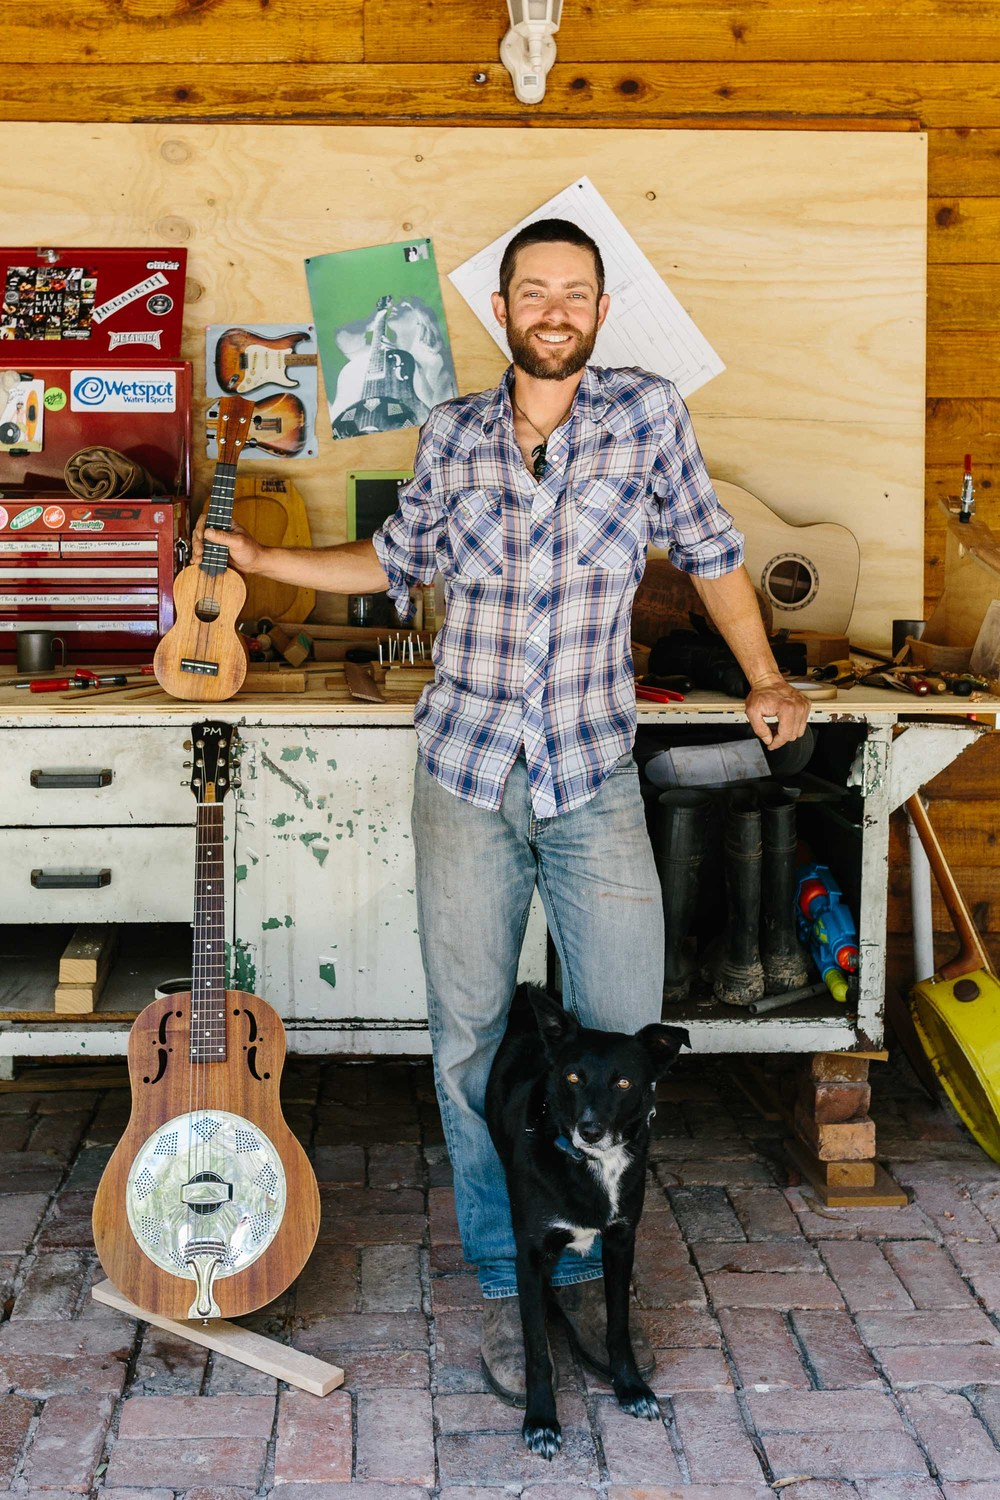 Marnie Hawson lifestyle photographer and An Honest Trade - Luthier